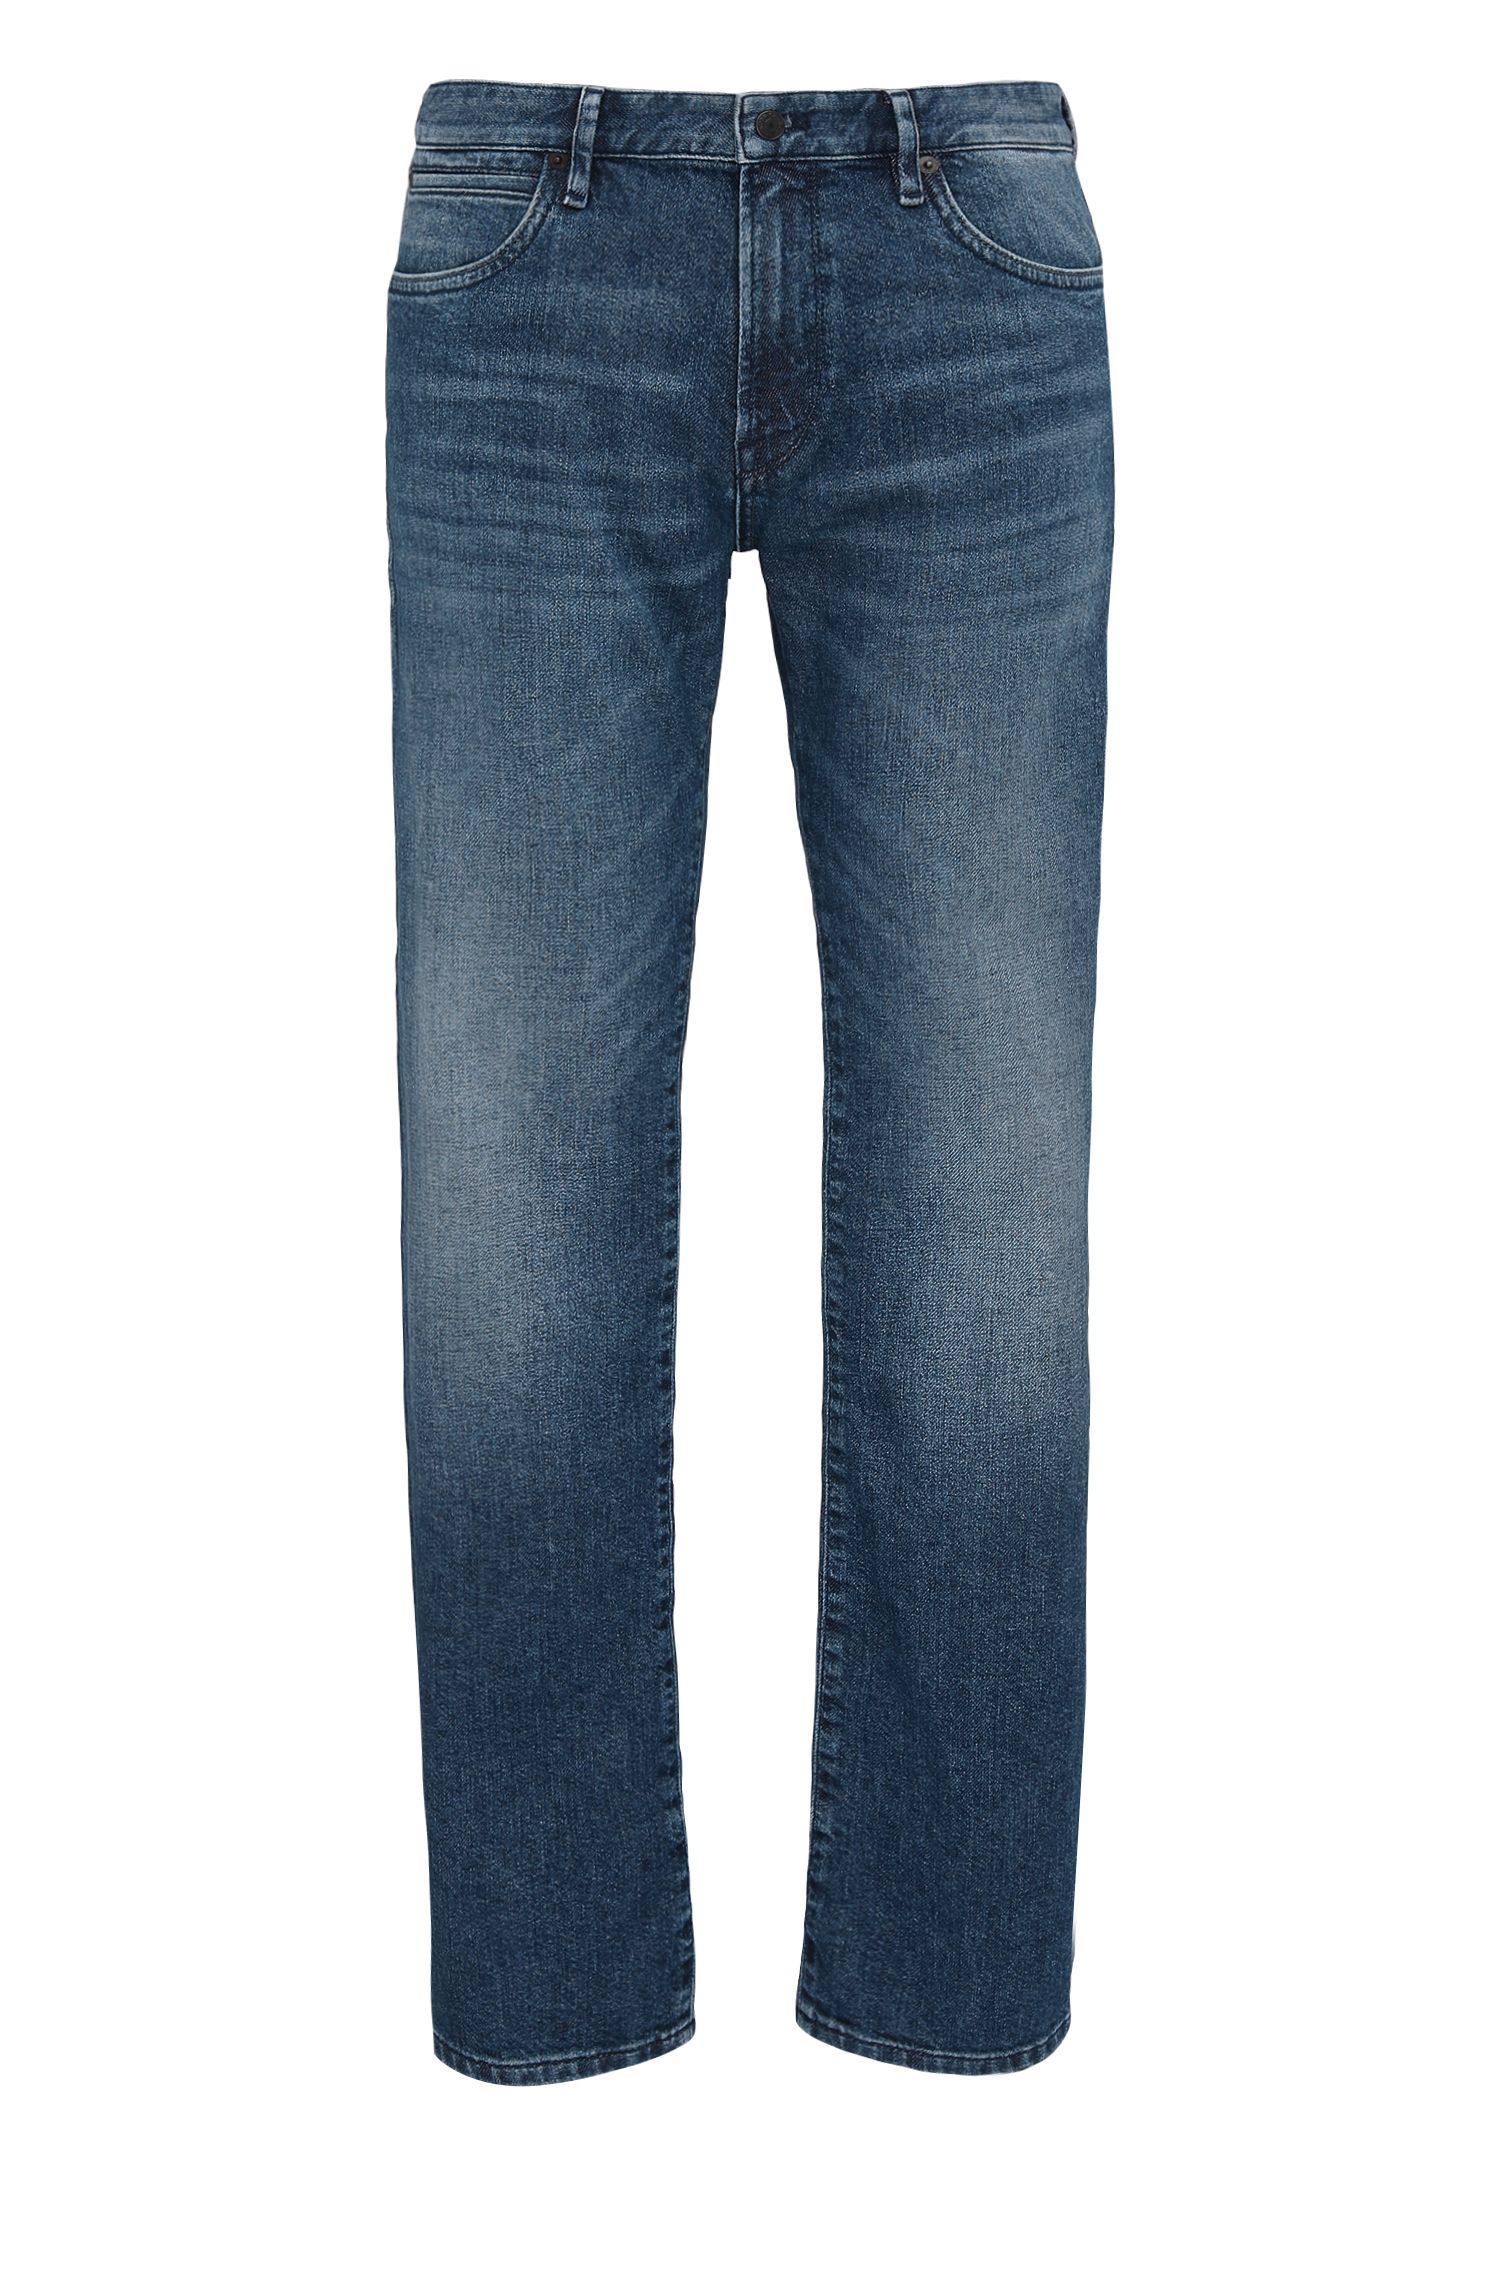 Regular-fit jeans in mid-weight cotton blend